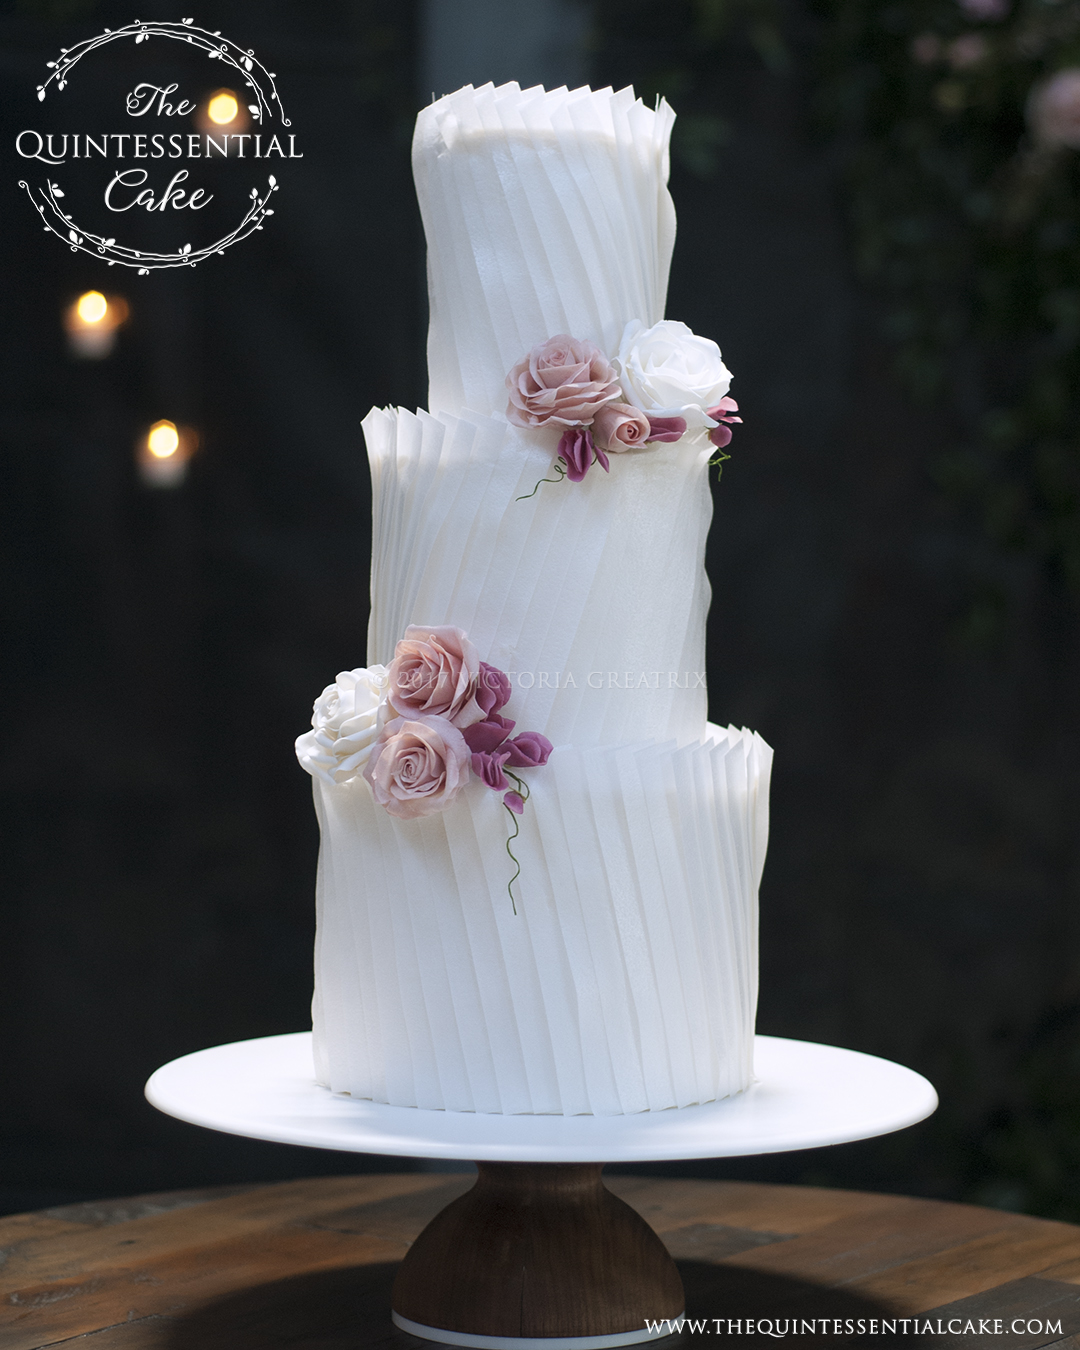 Light and Airy Ruffles with Sugar Roses | The Quintessential Cake | Chicago | Luxury Wedding Cakes | Fairlie Chicago